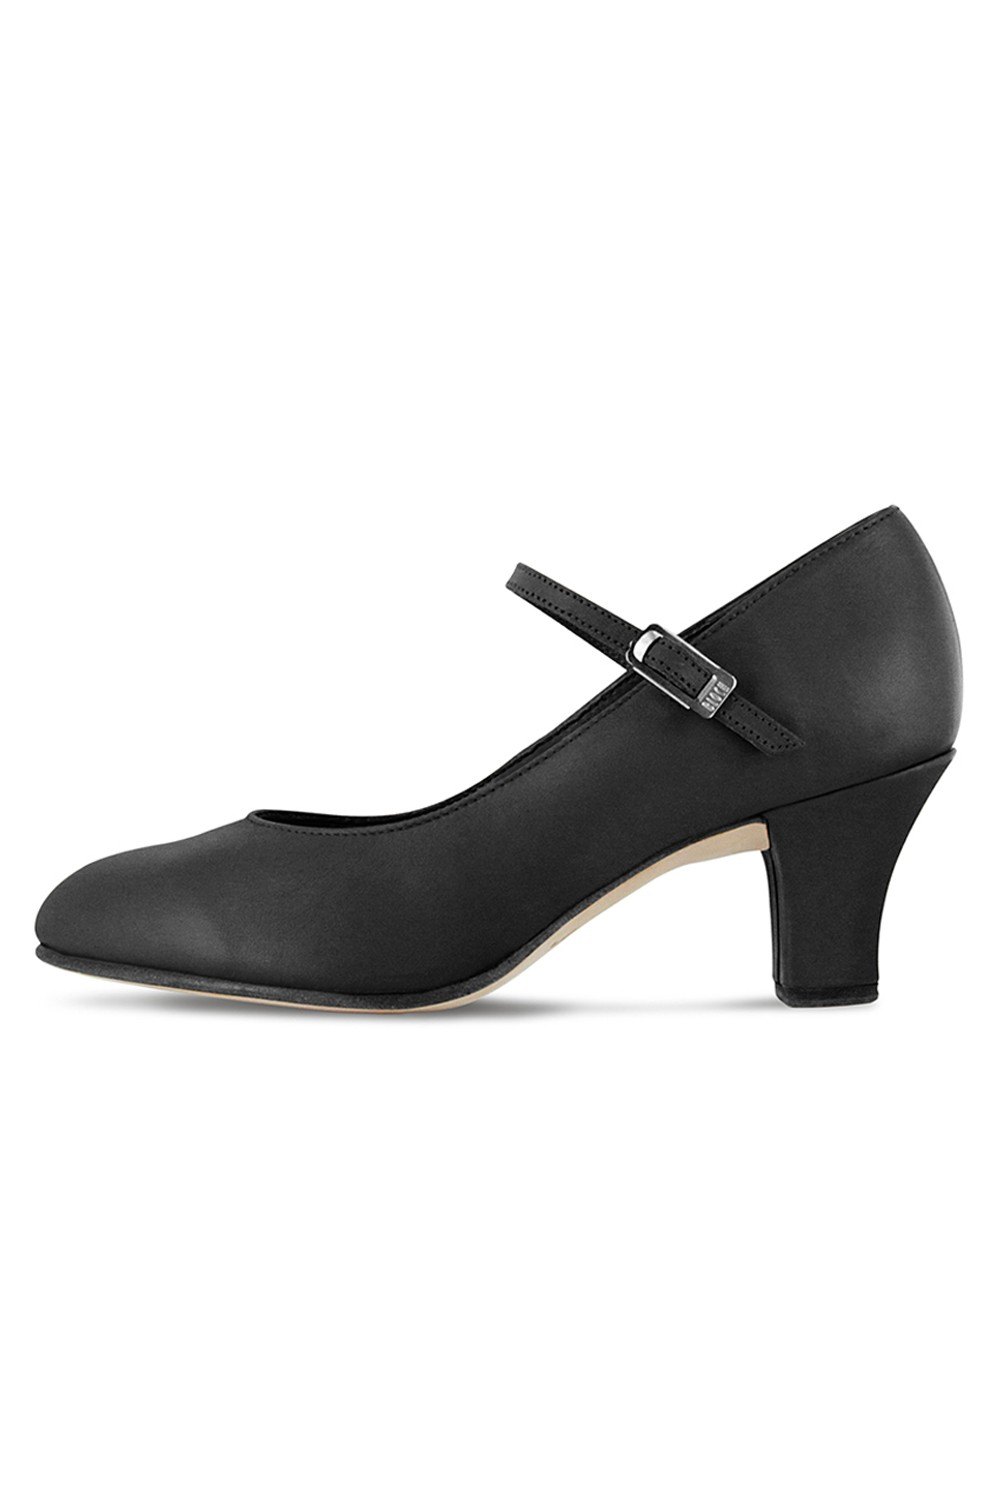 Cabaret Women's Character Shoes